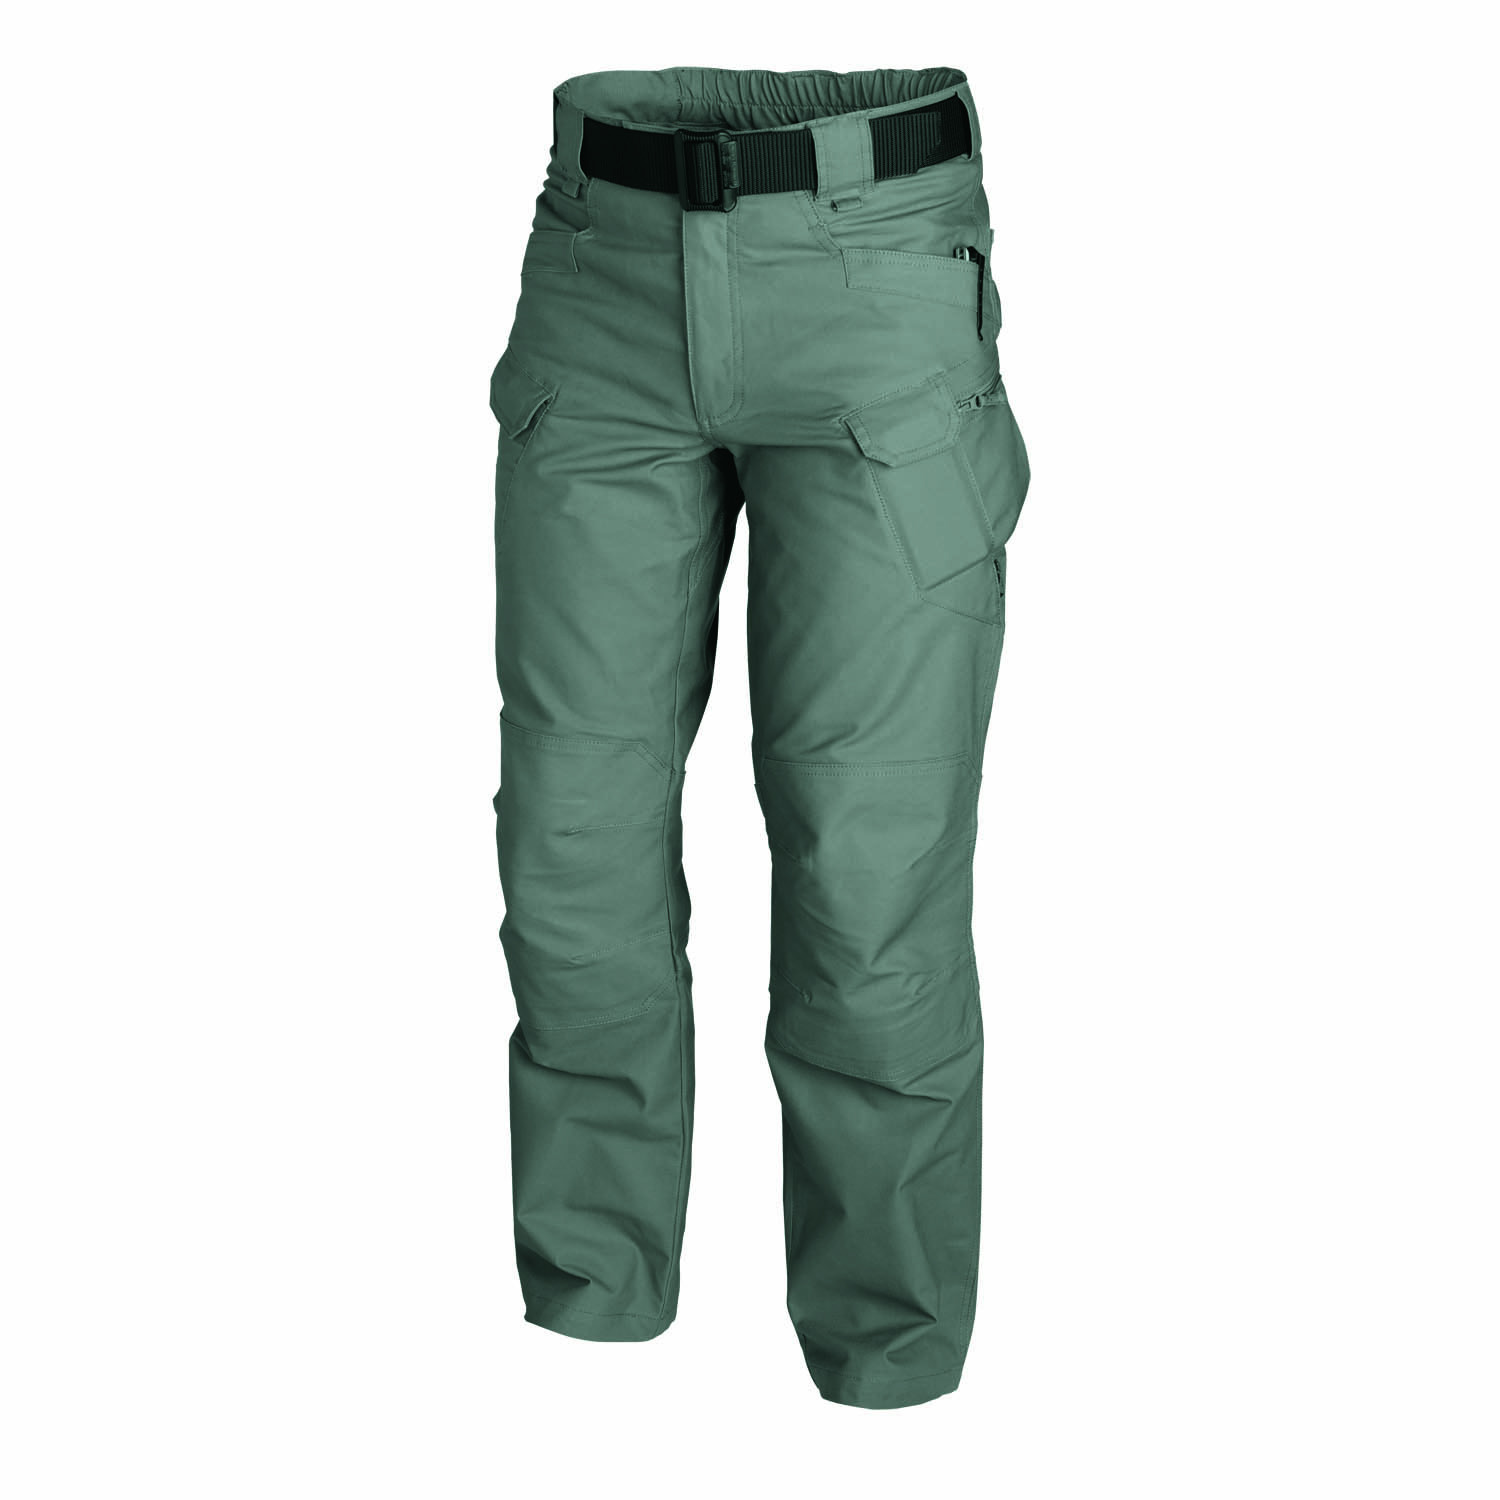 Helikon-Tex® Tactical Military UTP® Canvas Trousers Combat Pants - Olive Drab